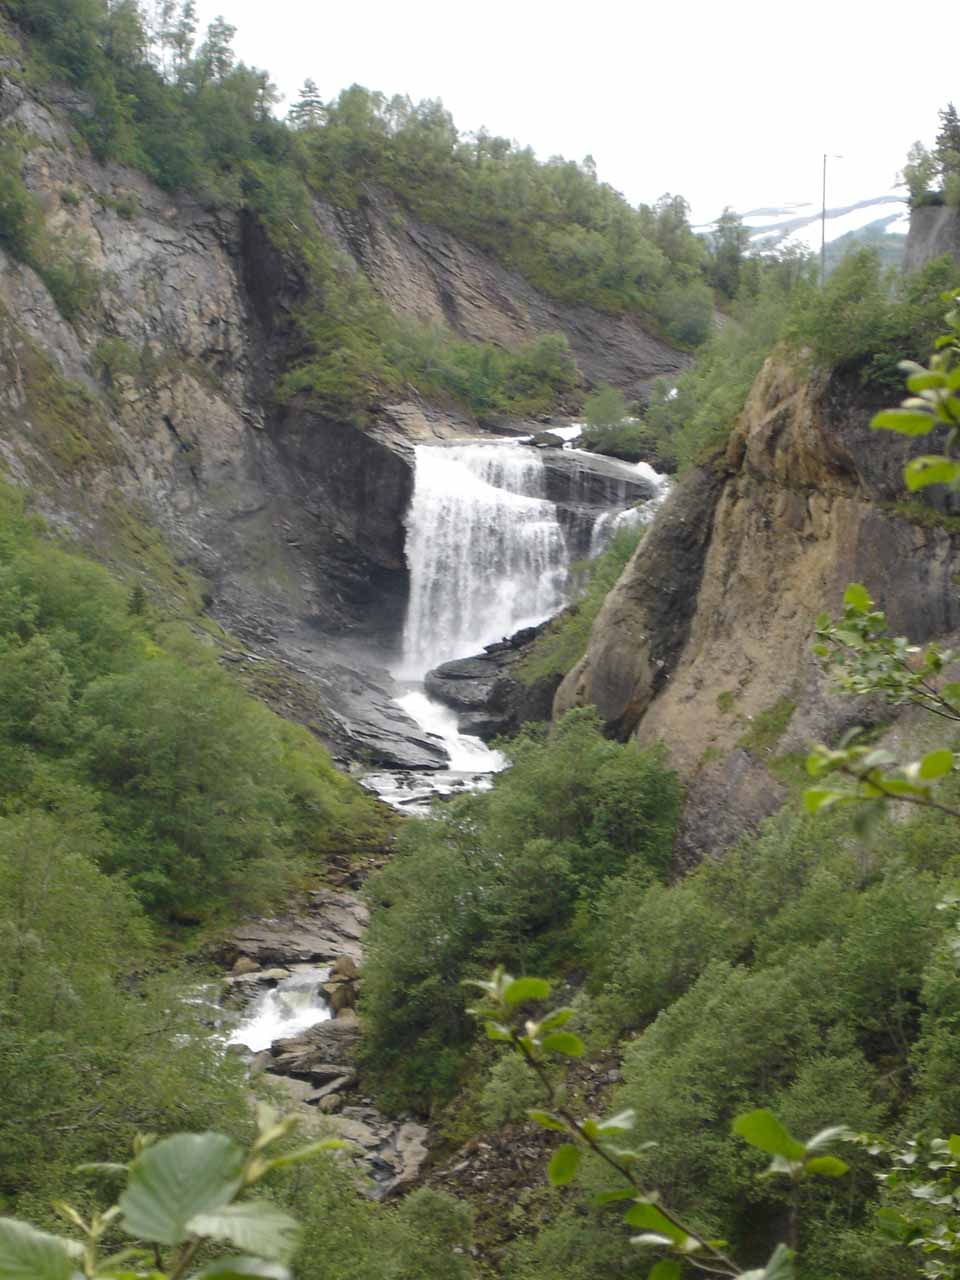 On our way to Steinsdalsfossen, we noticed this waterfall near the egress of one of the last tunnels (one of several tunnels) on the Mv7